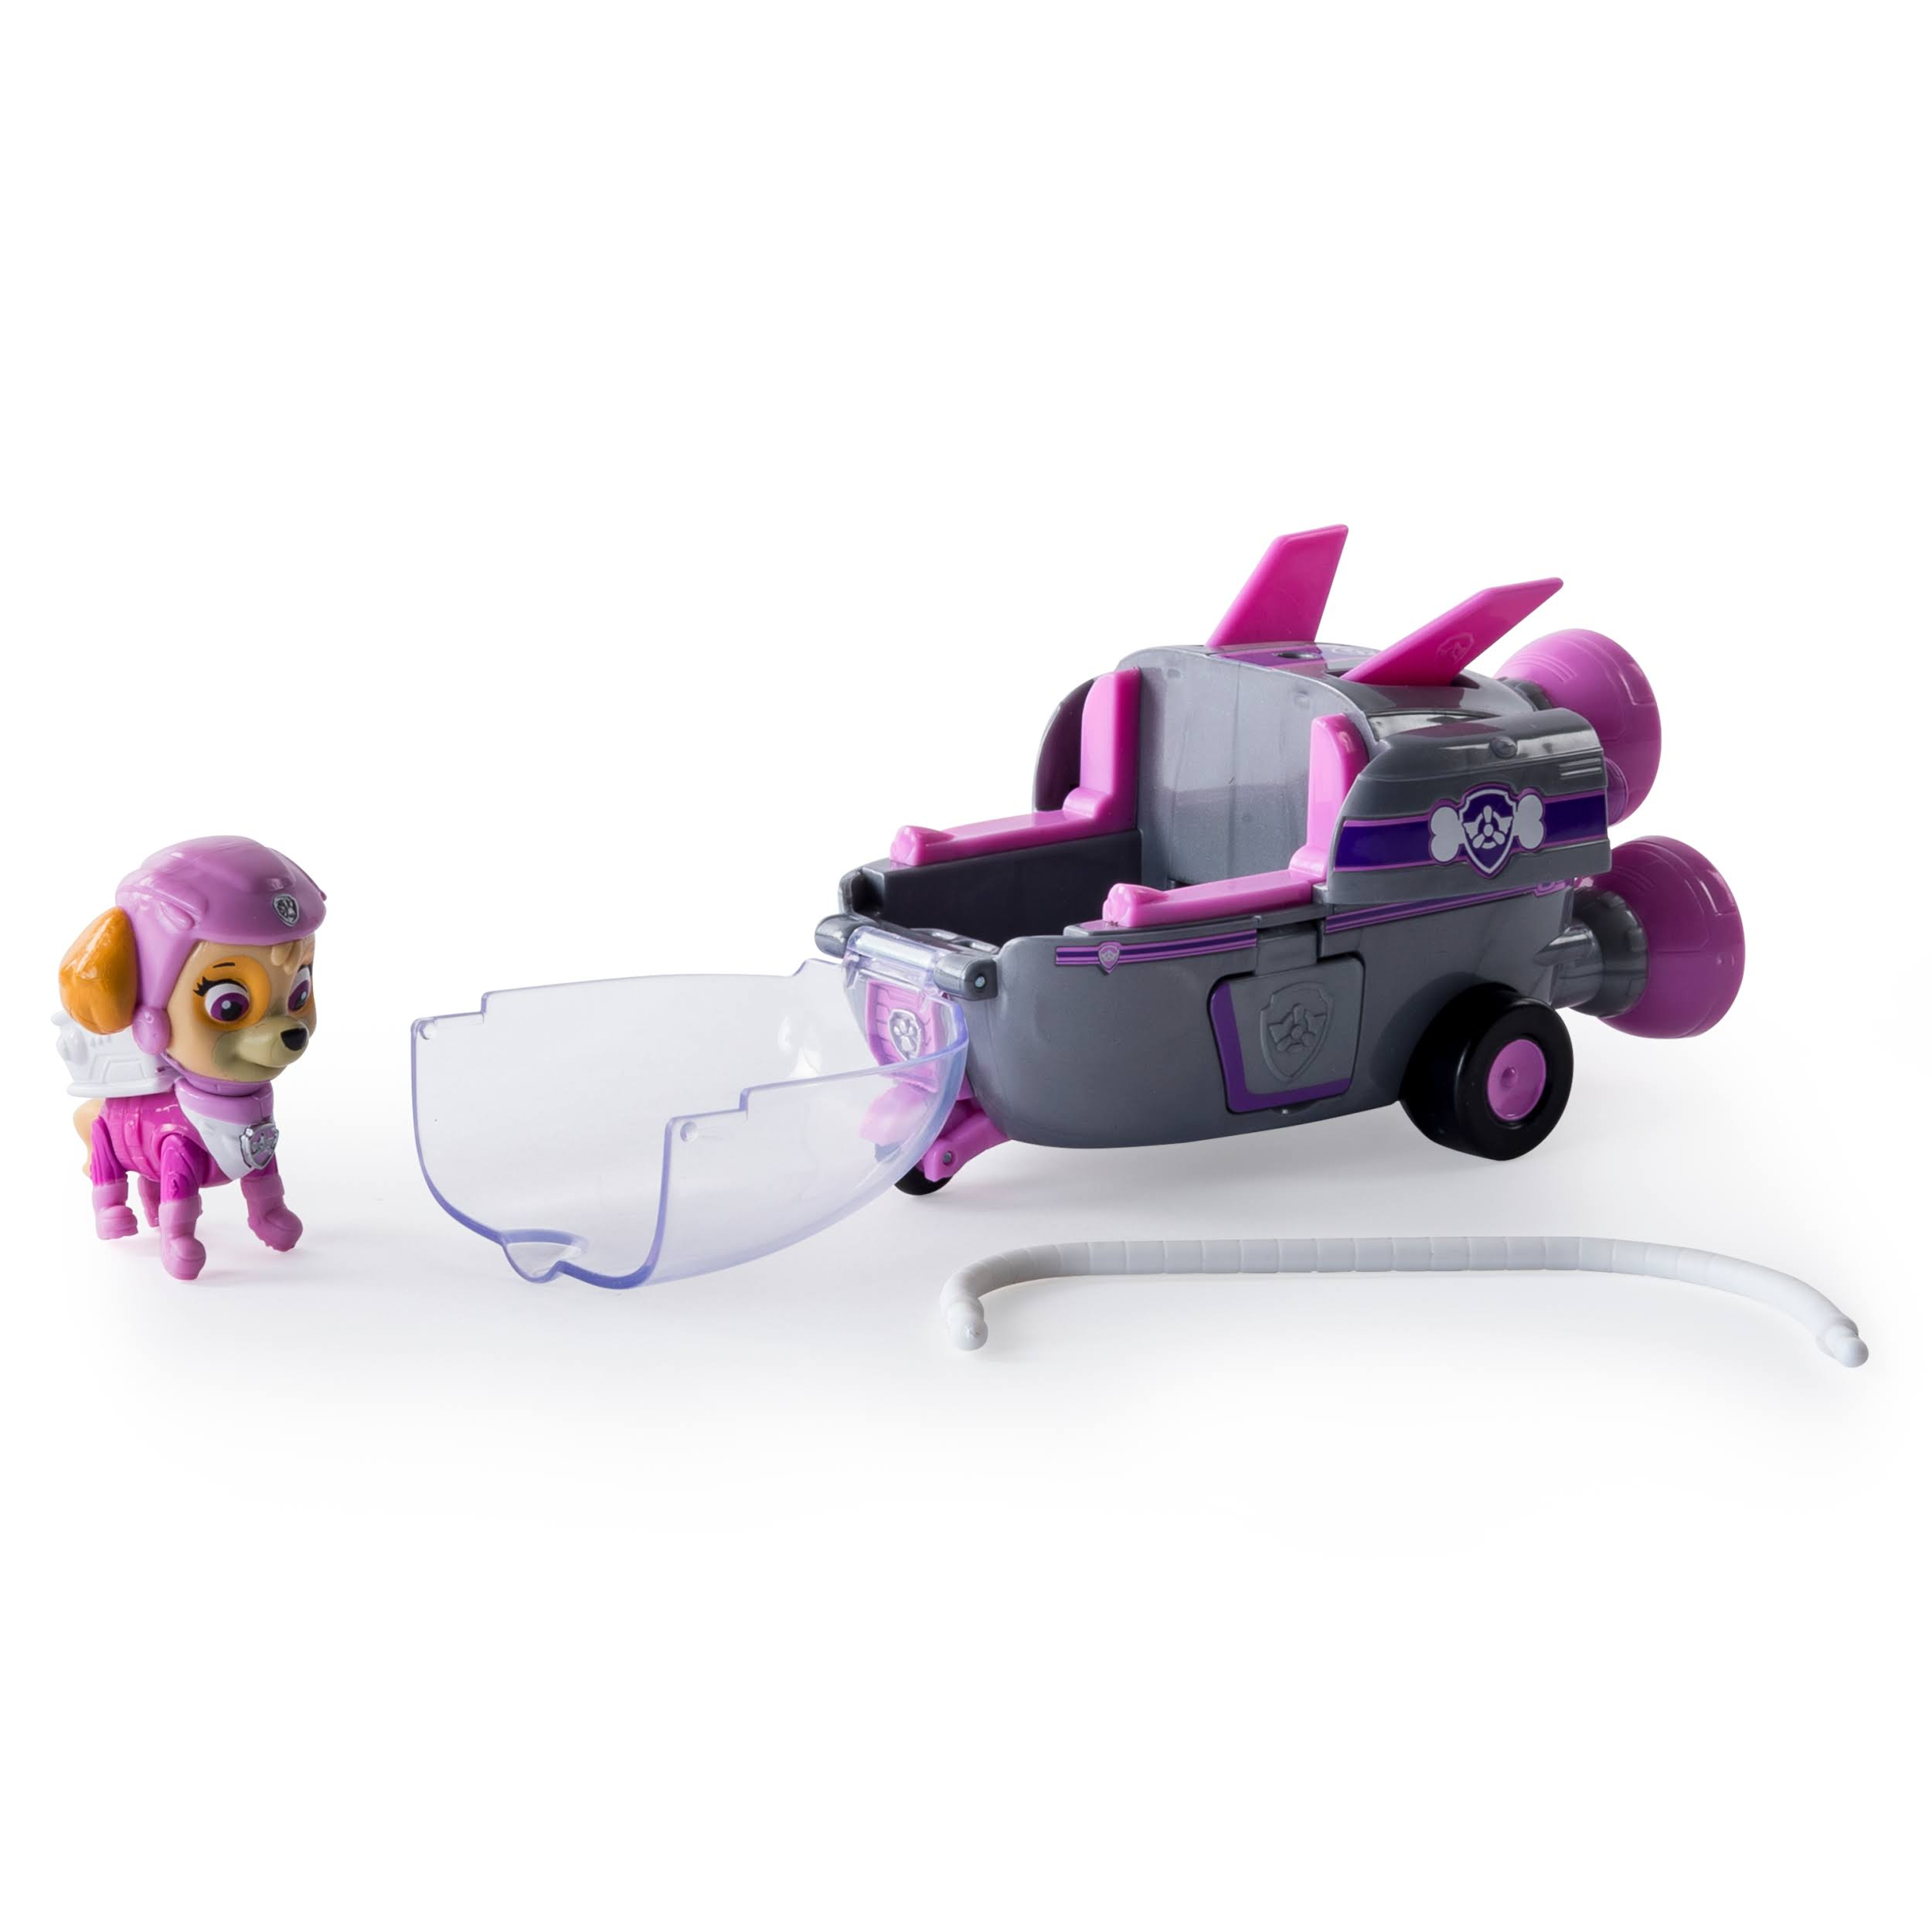 Spinmaster Paw Patrol Skye's Rocket Ship Playset